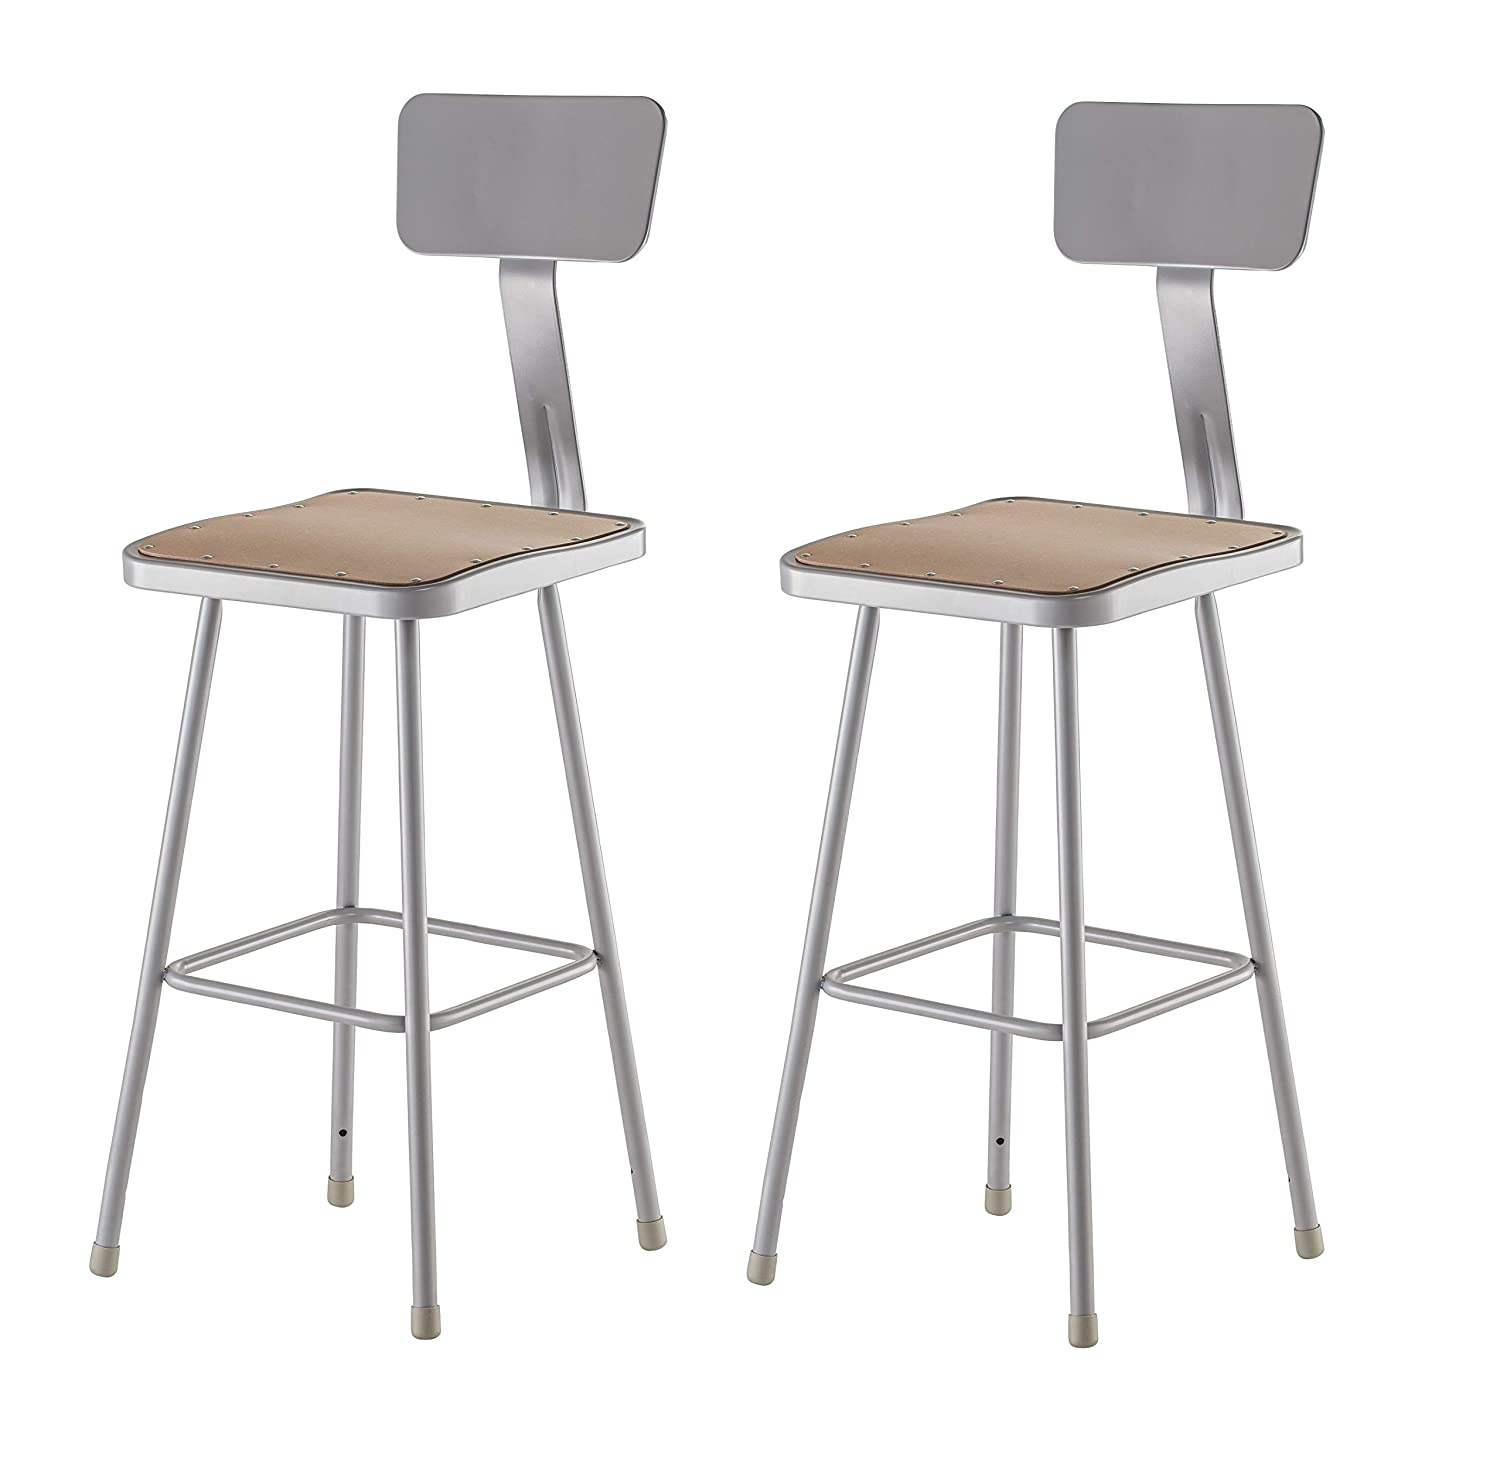 National Public Seating 6330B CN Grey Steel Stool with 30 Square Hardboard Seat and Backrest Pack of 2